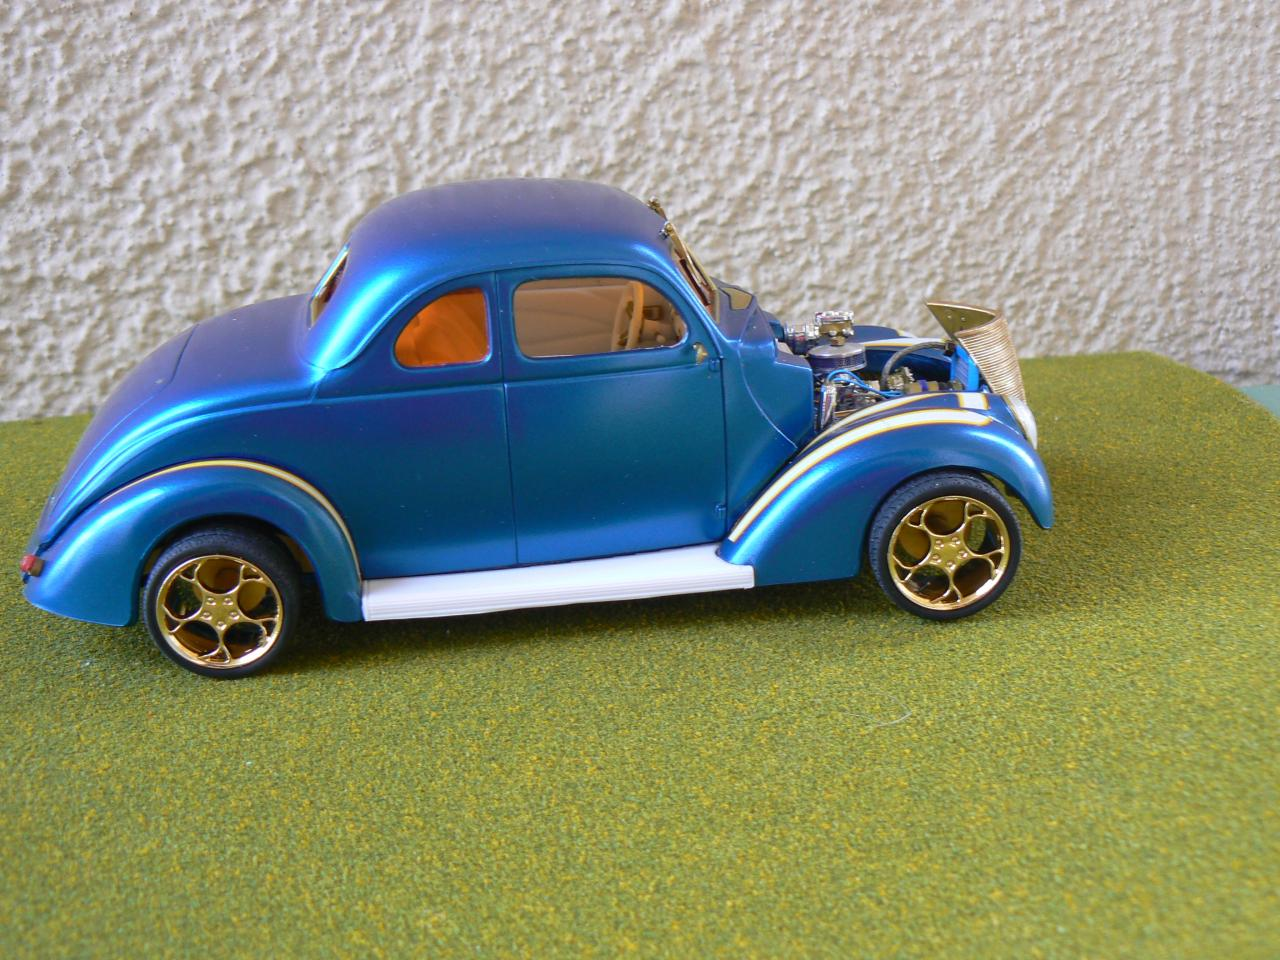 my blue hotrod was done on my 18 wheeler while i was on road